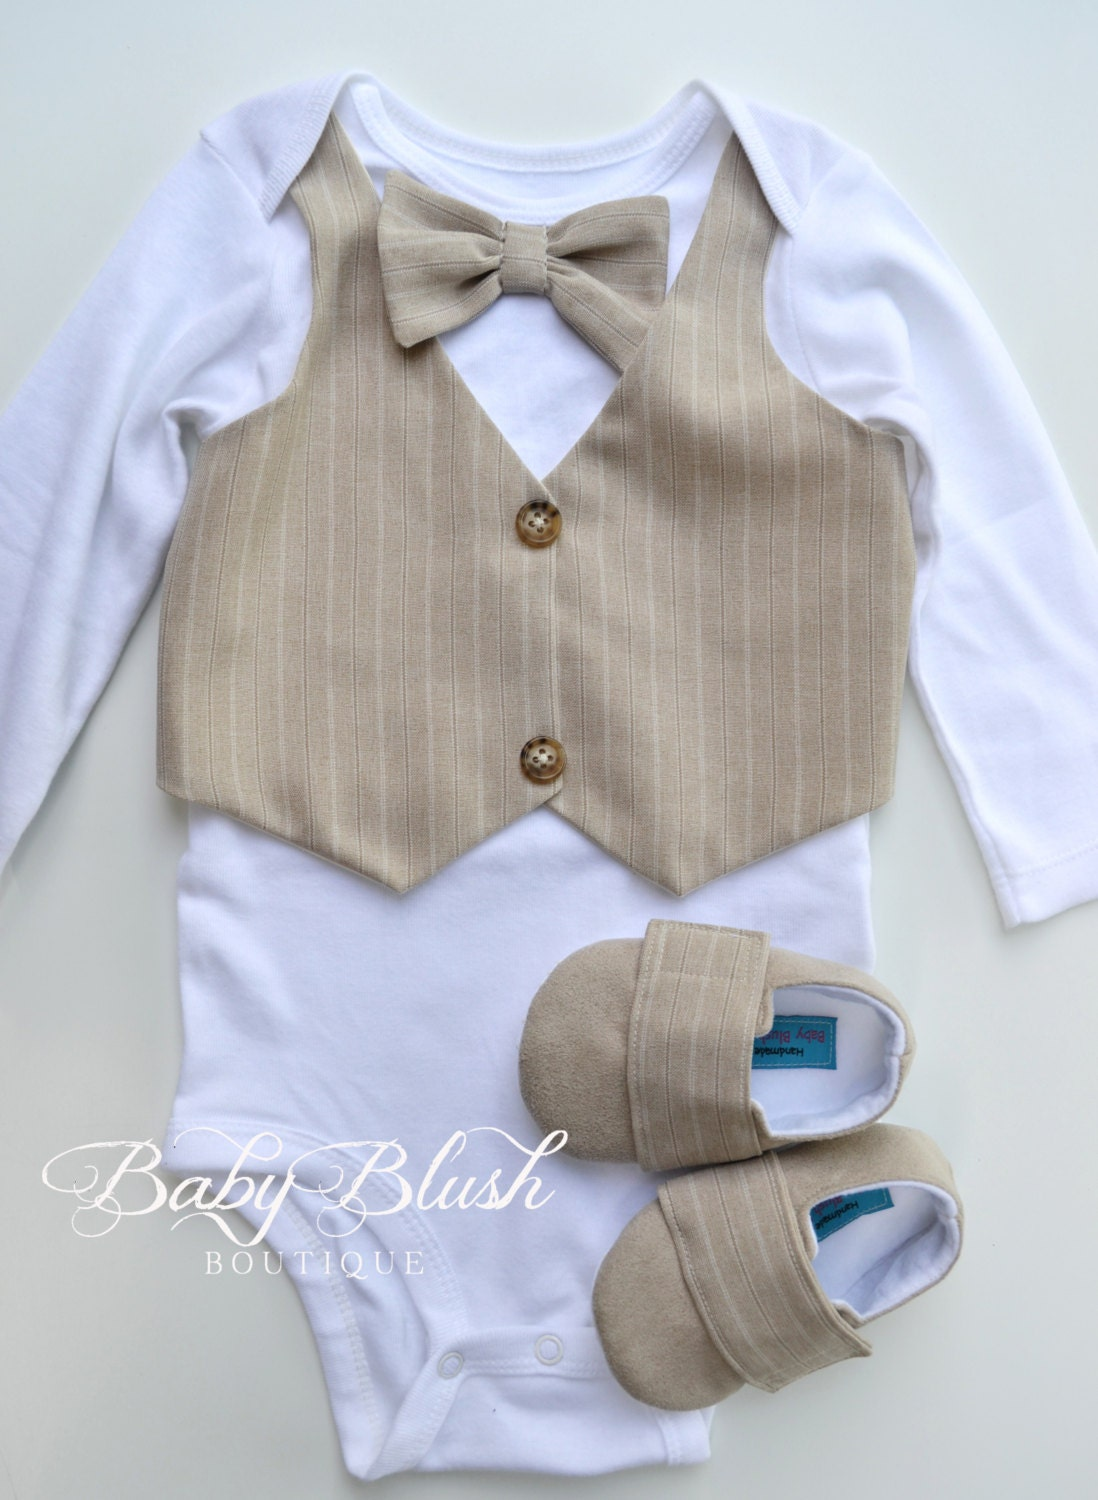 PatPat offers high quality baby outfits and toddler clothing at cheap price, you can Higher Quality· Lower Price· Top Rated Gold Seller· Daily Deals Up to 90% OFF.